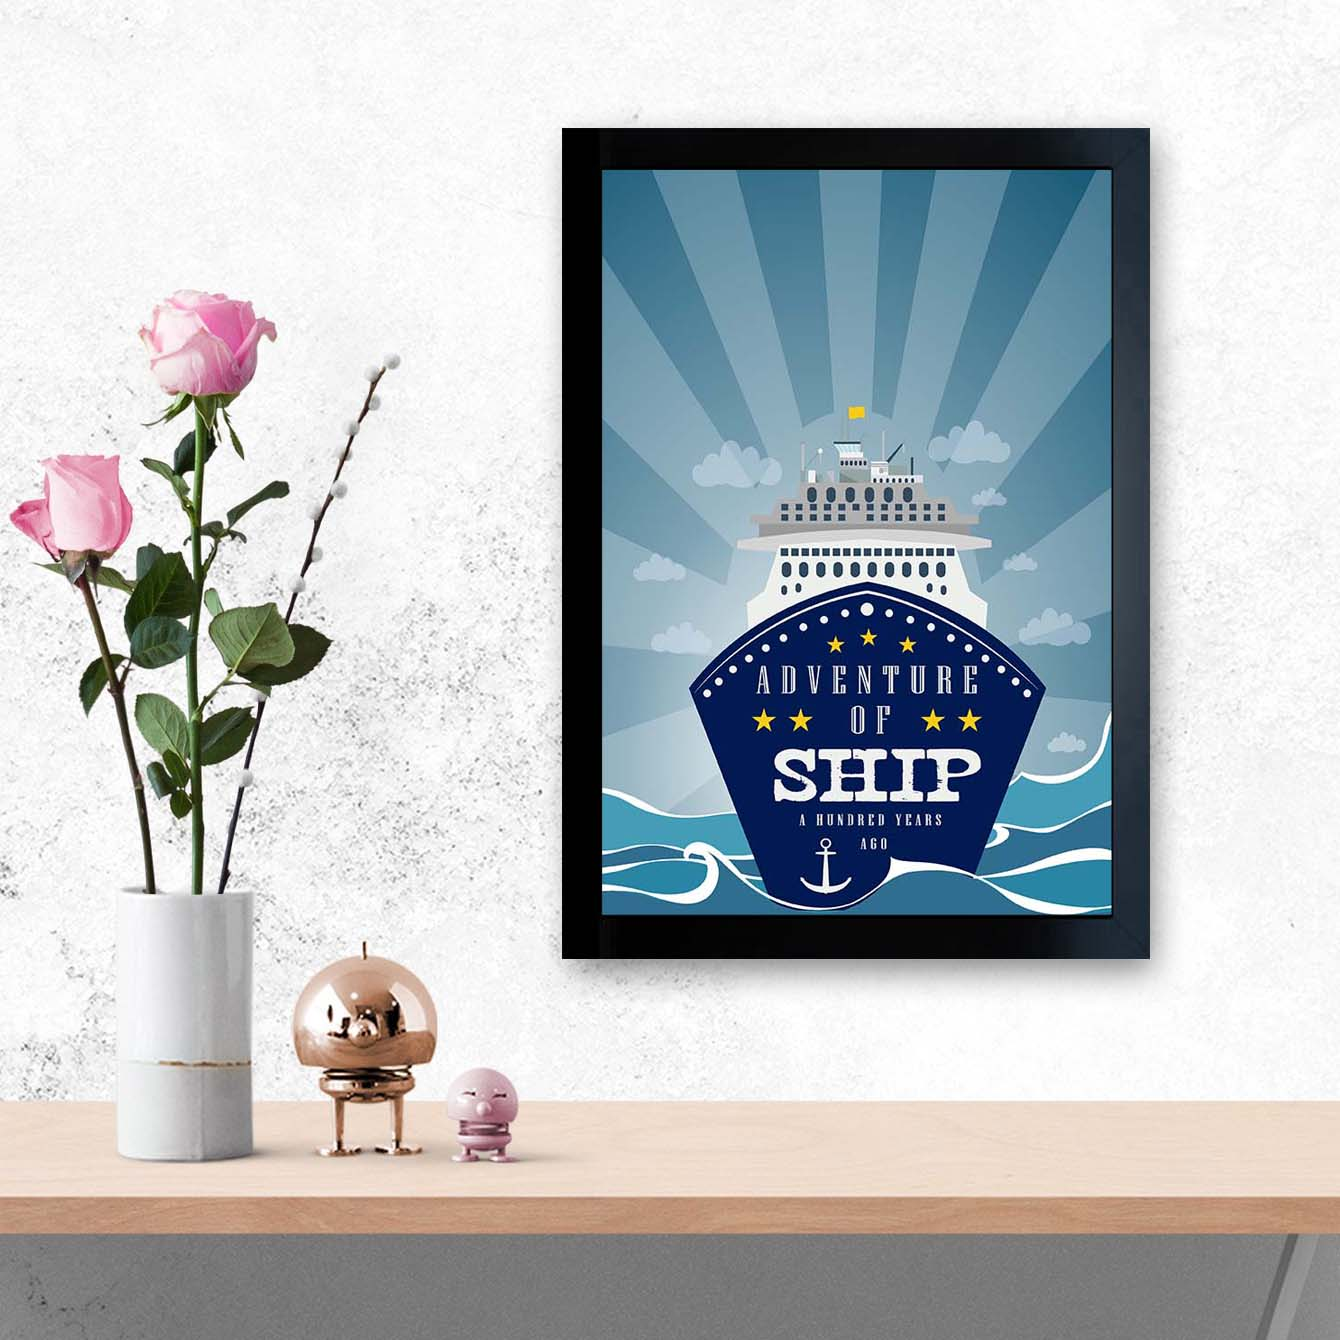 Adventure at Ship Motivational Glass Framed Posters & Artprints